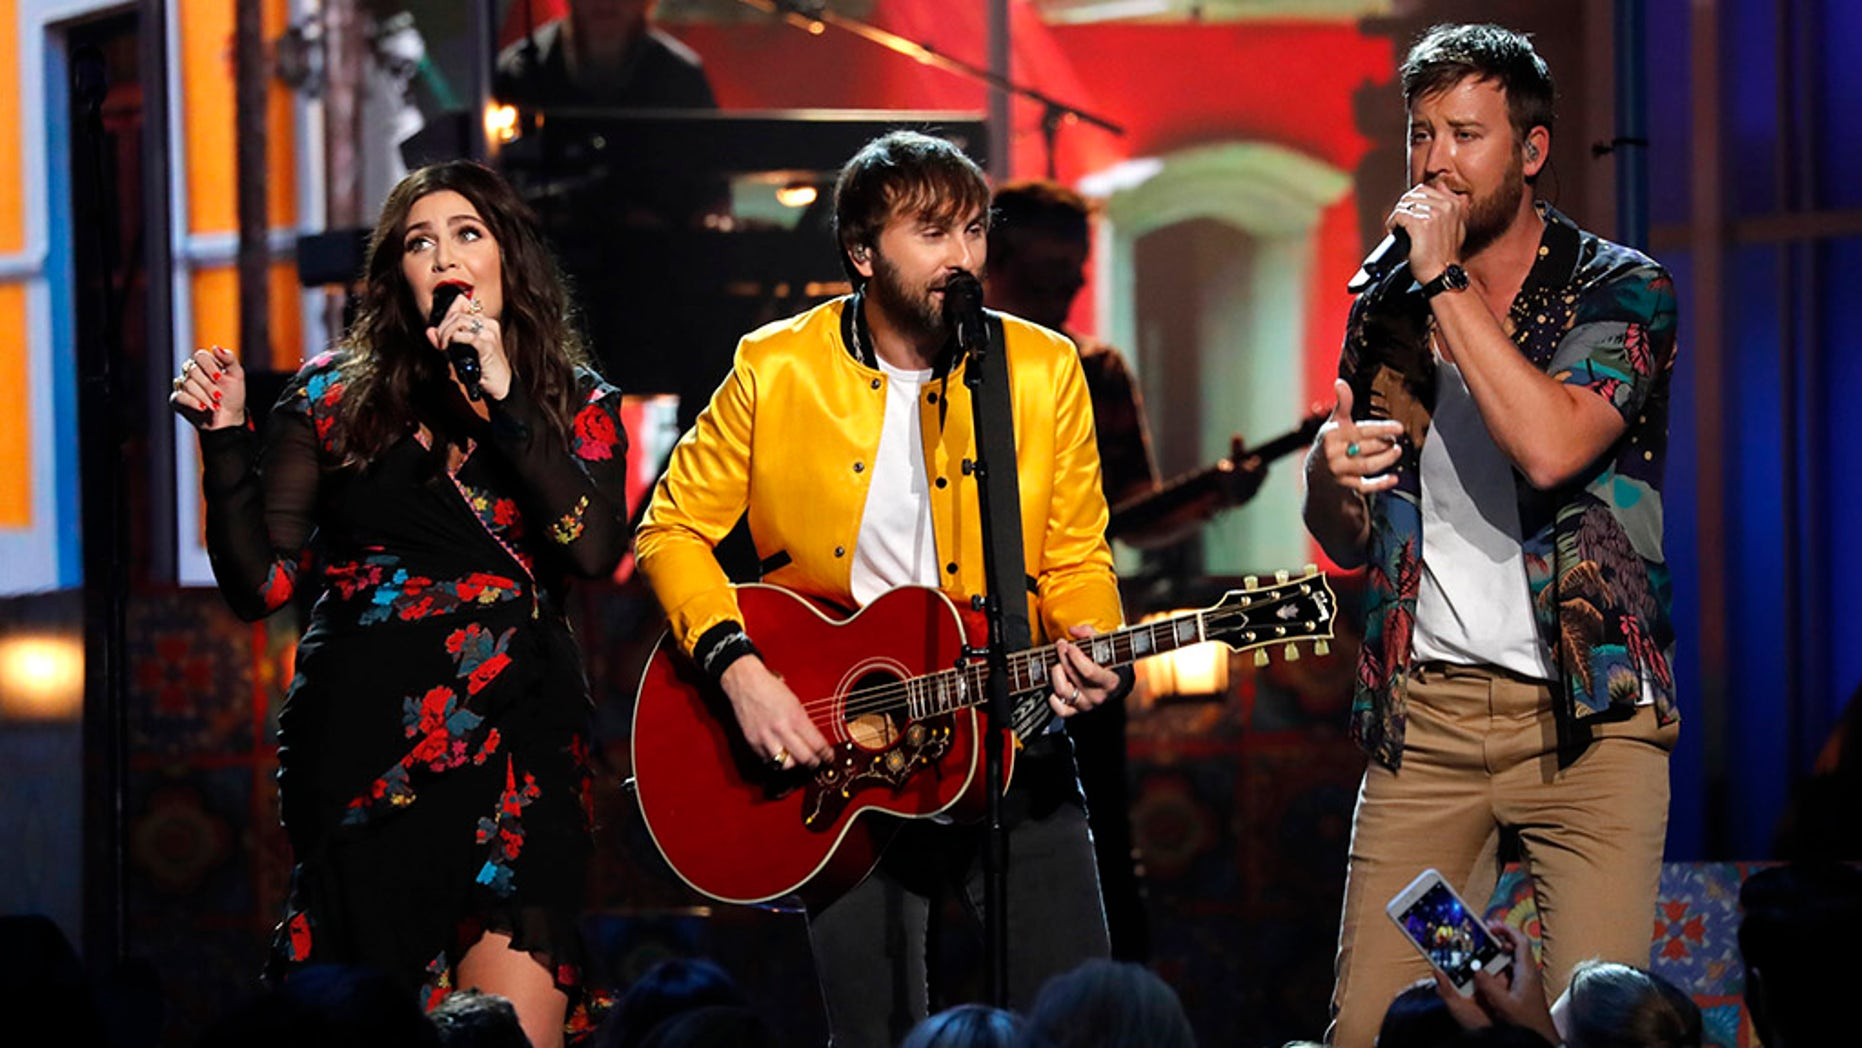 Lady Antebellum will perform on select dates in February, May and August as part of a Las Vegas residency.